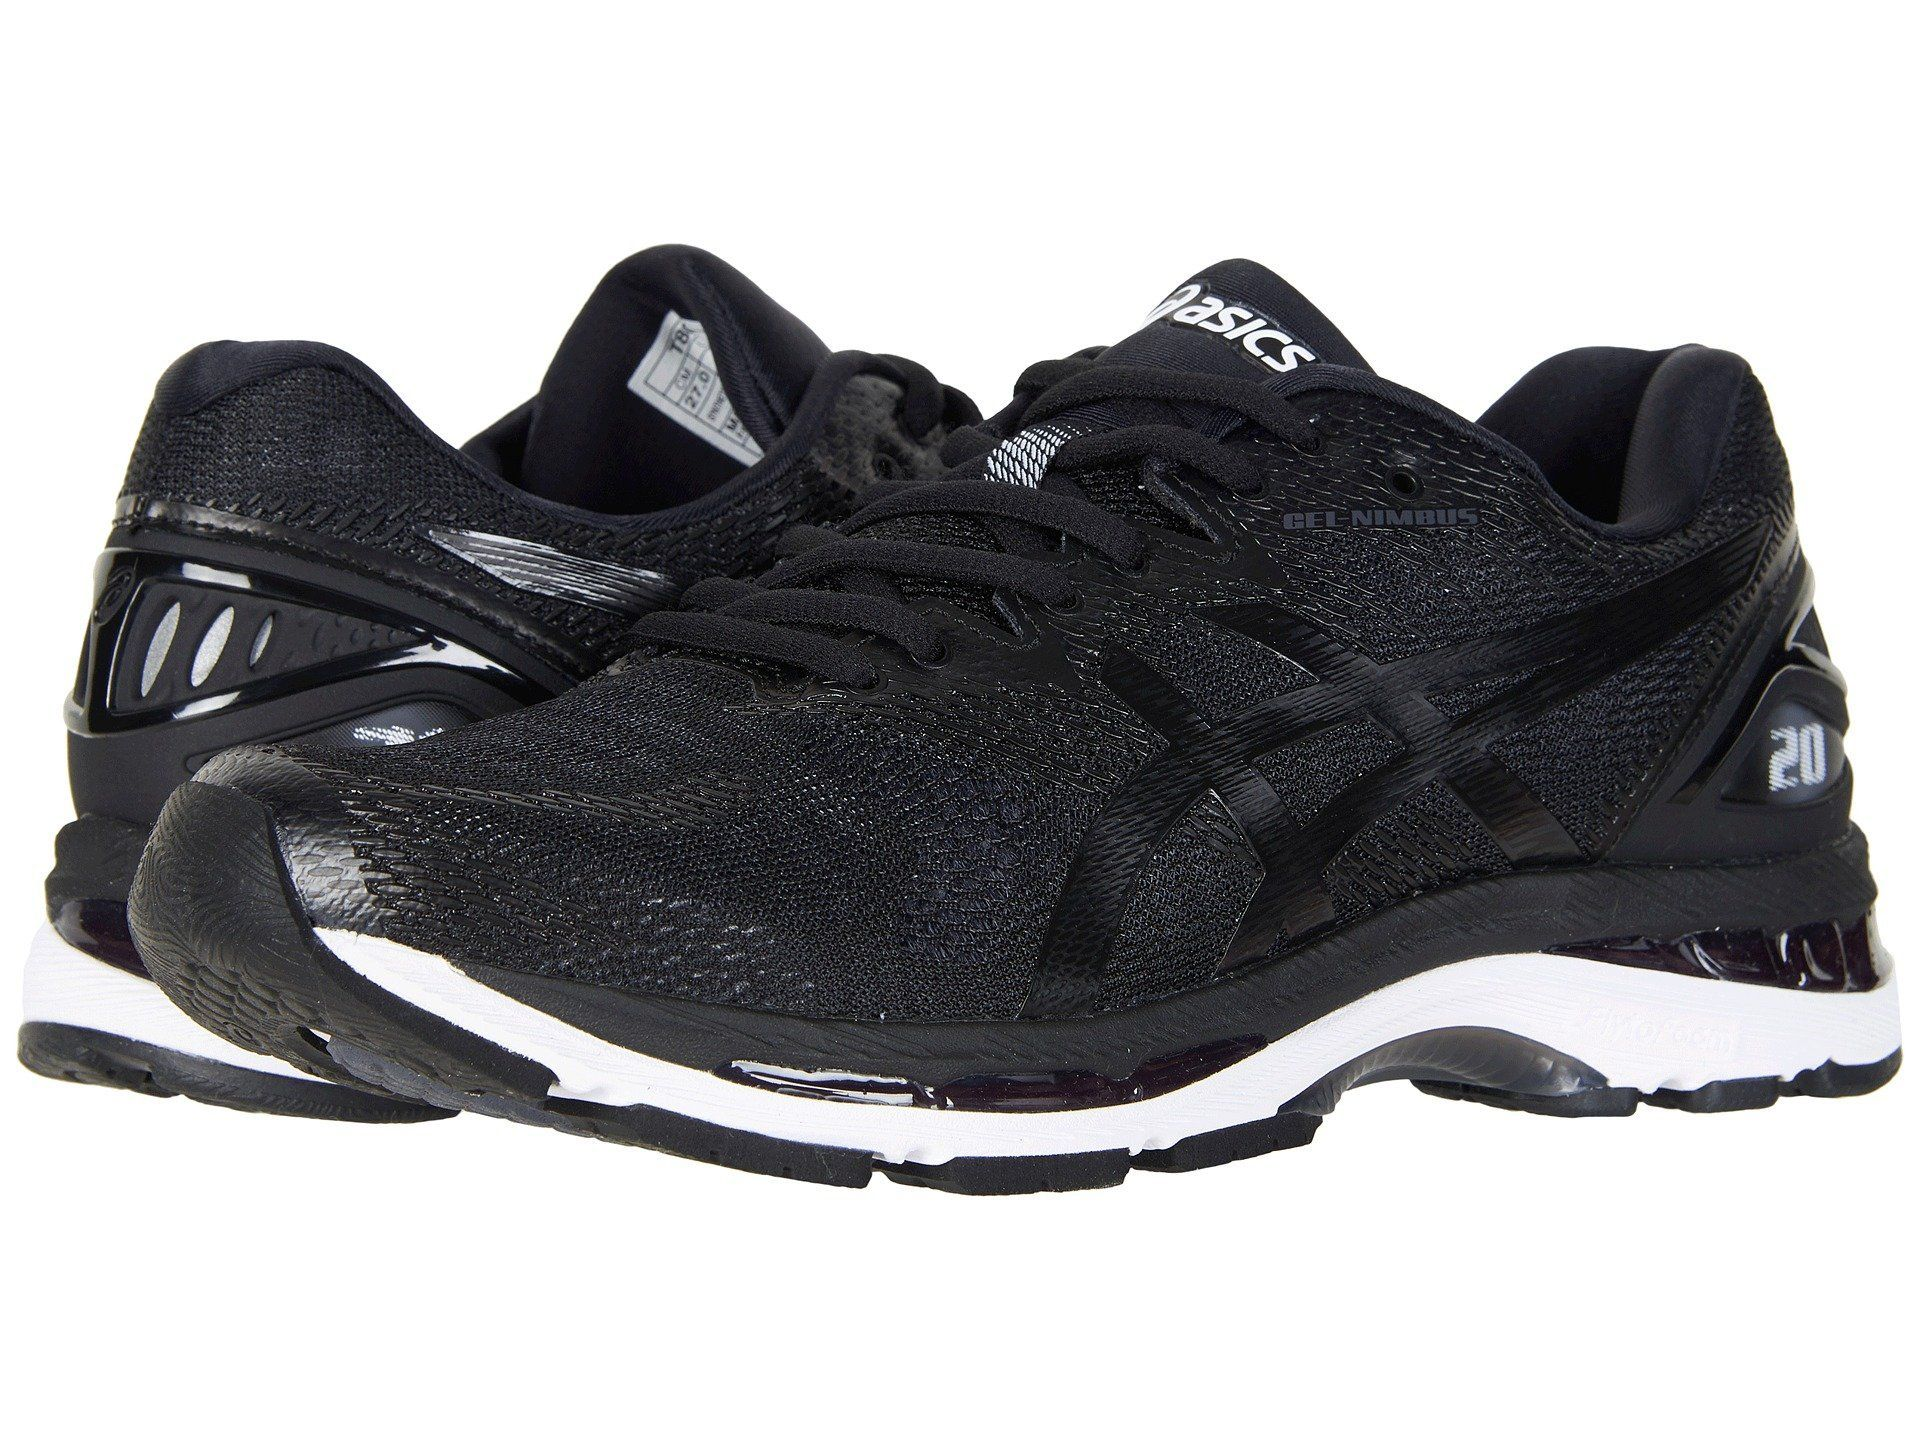 ASICS Gel-Nimbus 20 Men   Black   White   Carbon (T800N-9001 ... 62262f40b8dd